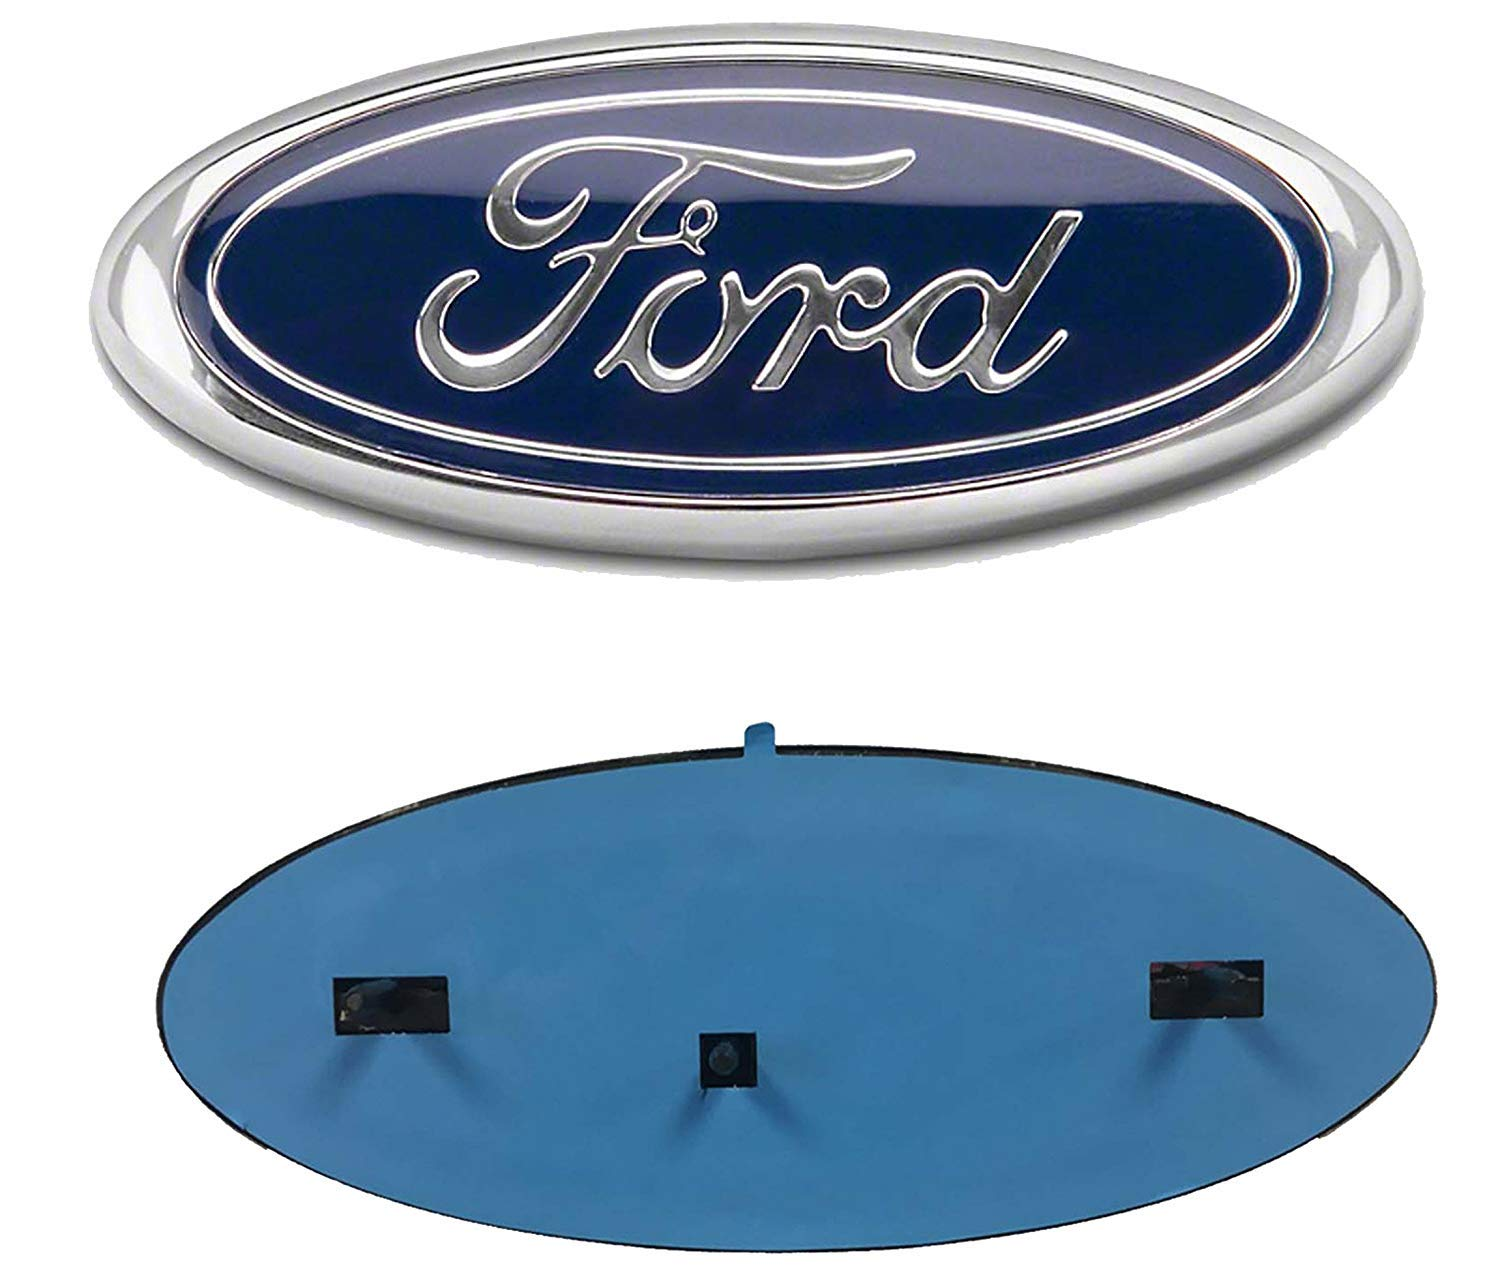 bearfire 2005-2014 Ford F150 Dark Blue Oval 9'' X 3.5'' Front Grille Replacement Badge Emblem Medallion Name Plate